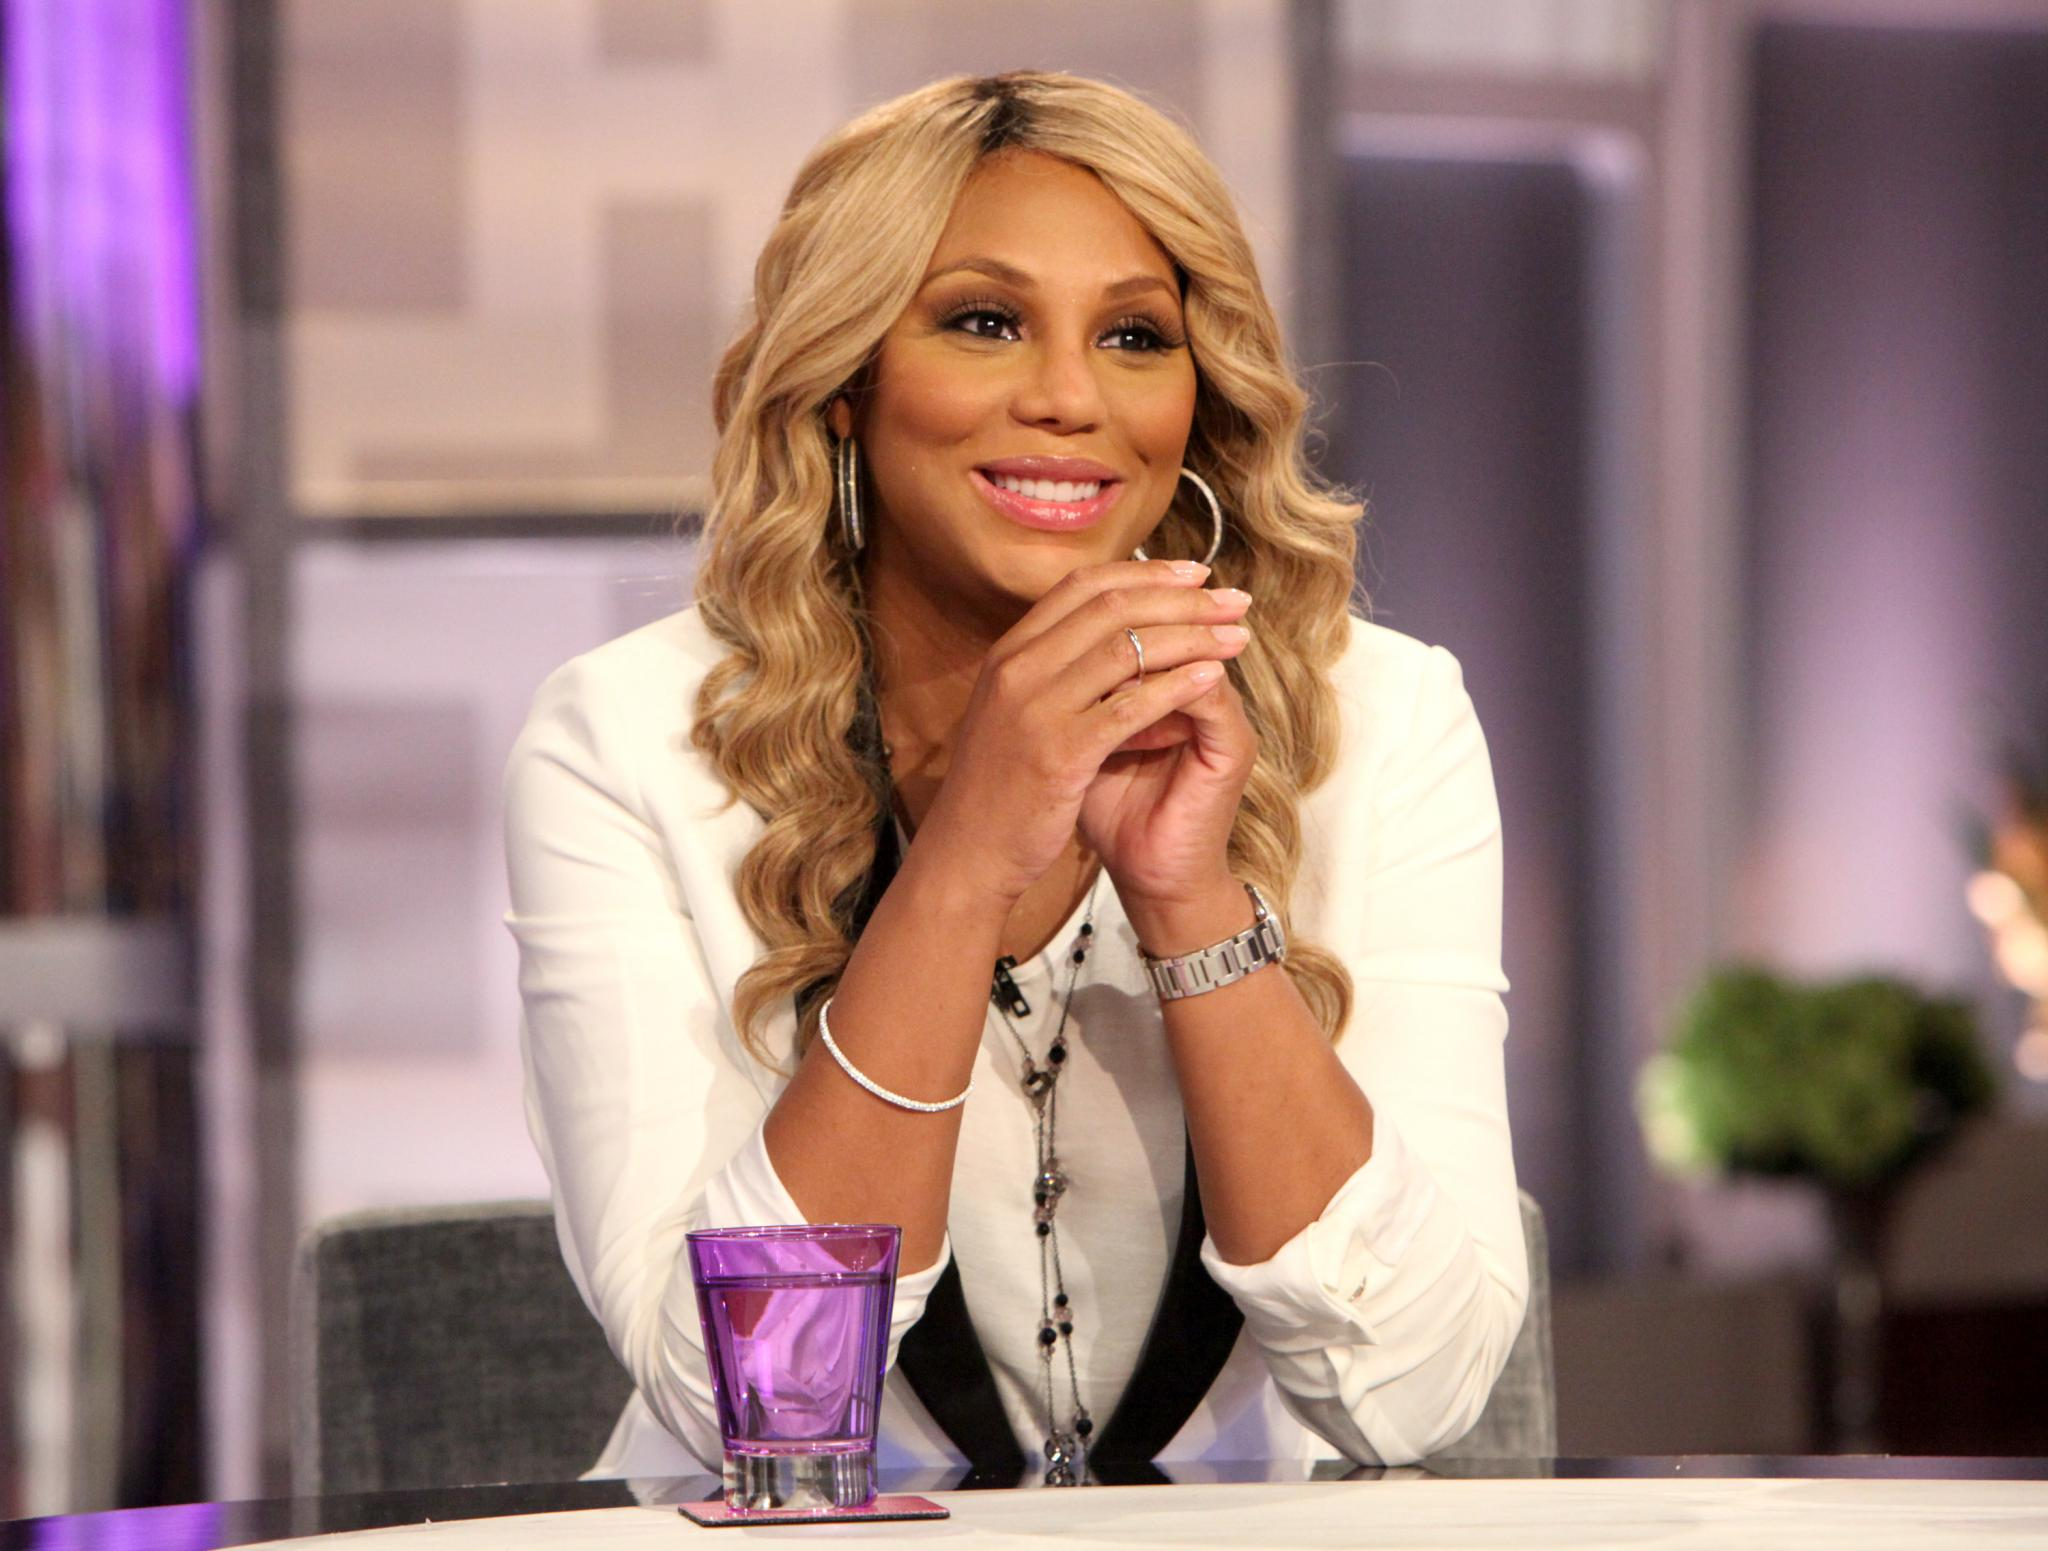 Tamar Braxton Triggers Mixed Reactions Form Fans With Her Latest Message With Biblical Connotations